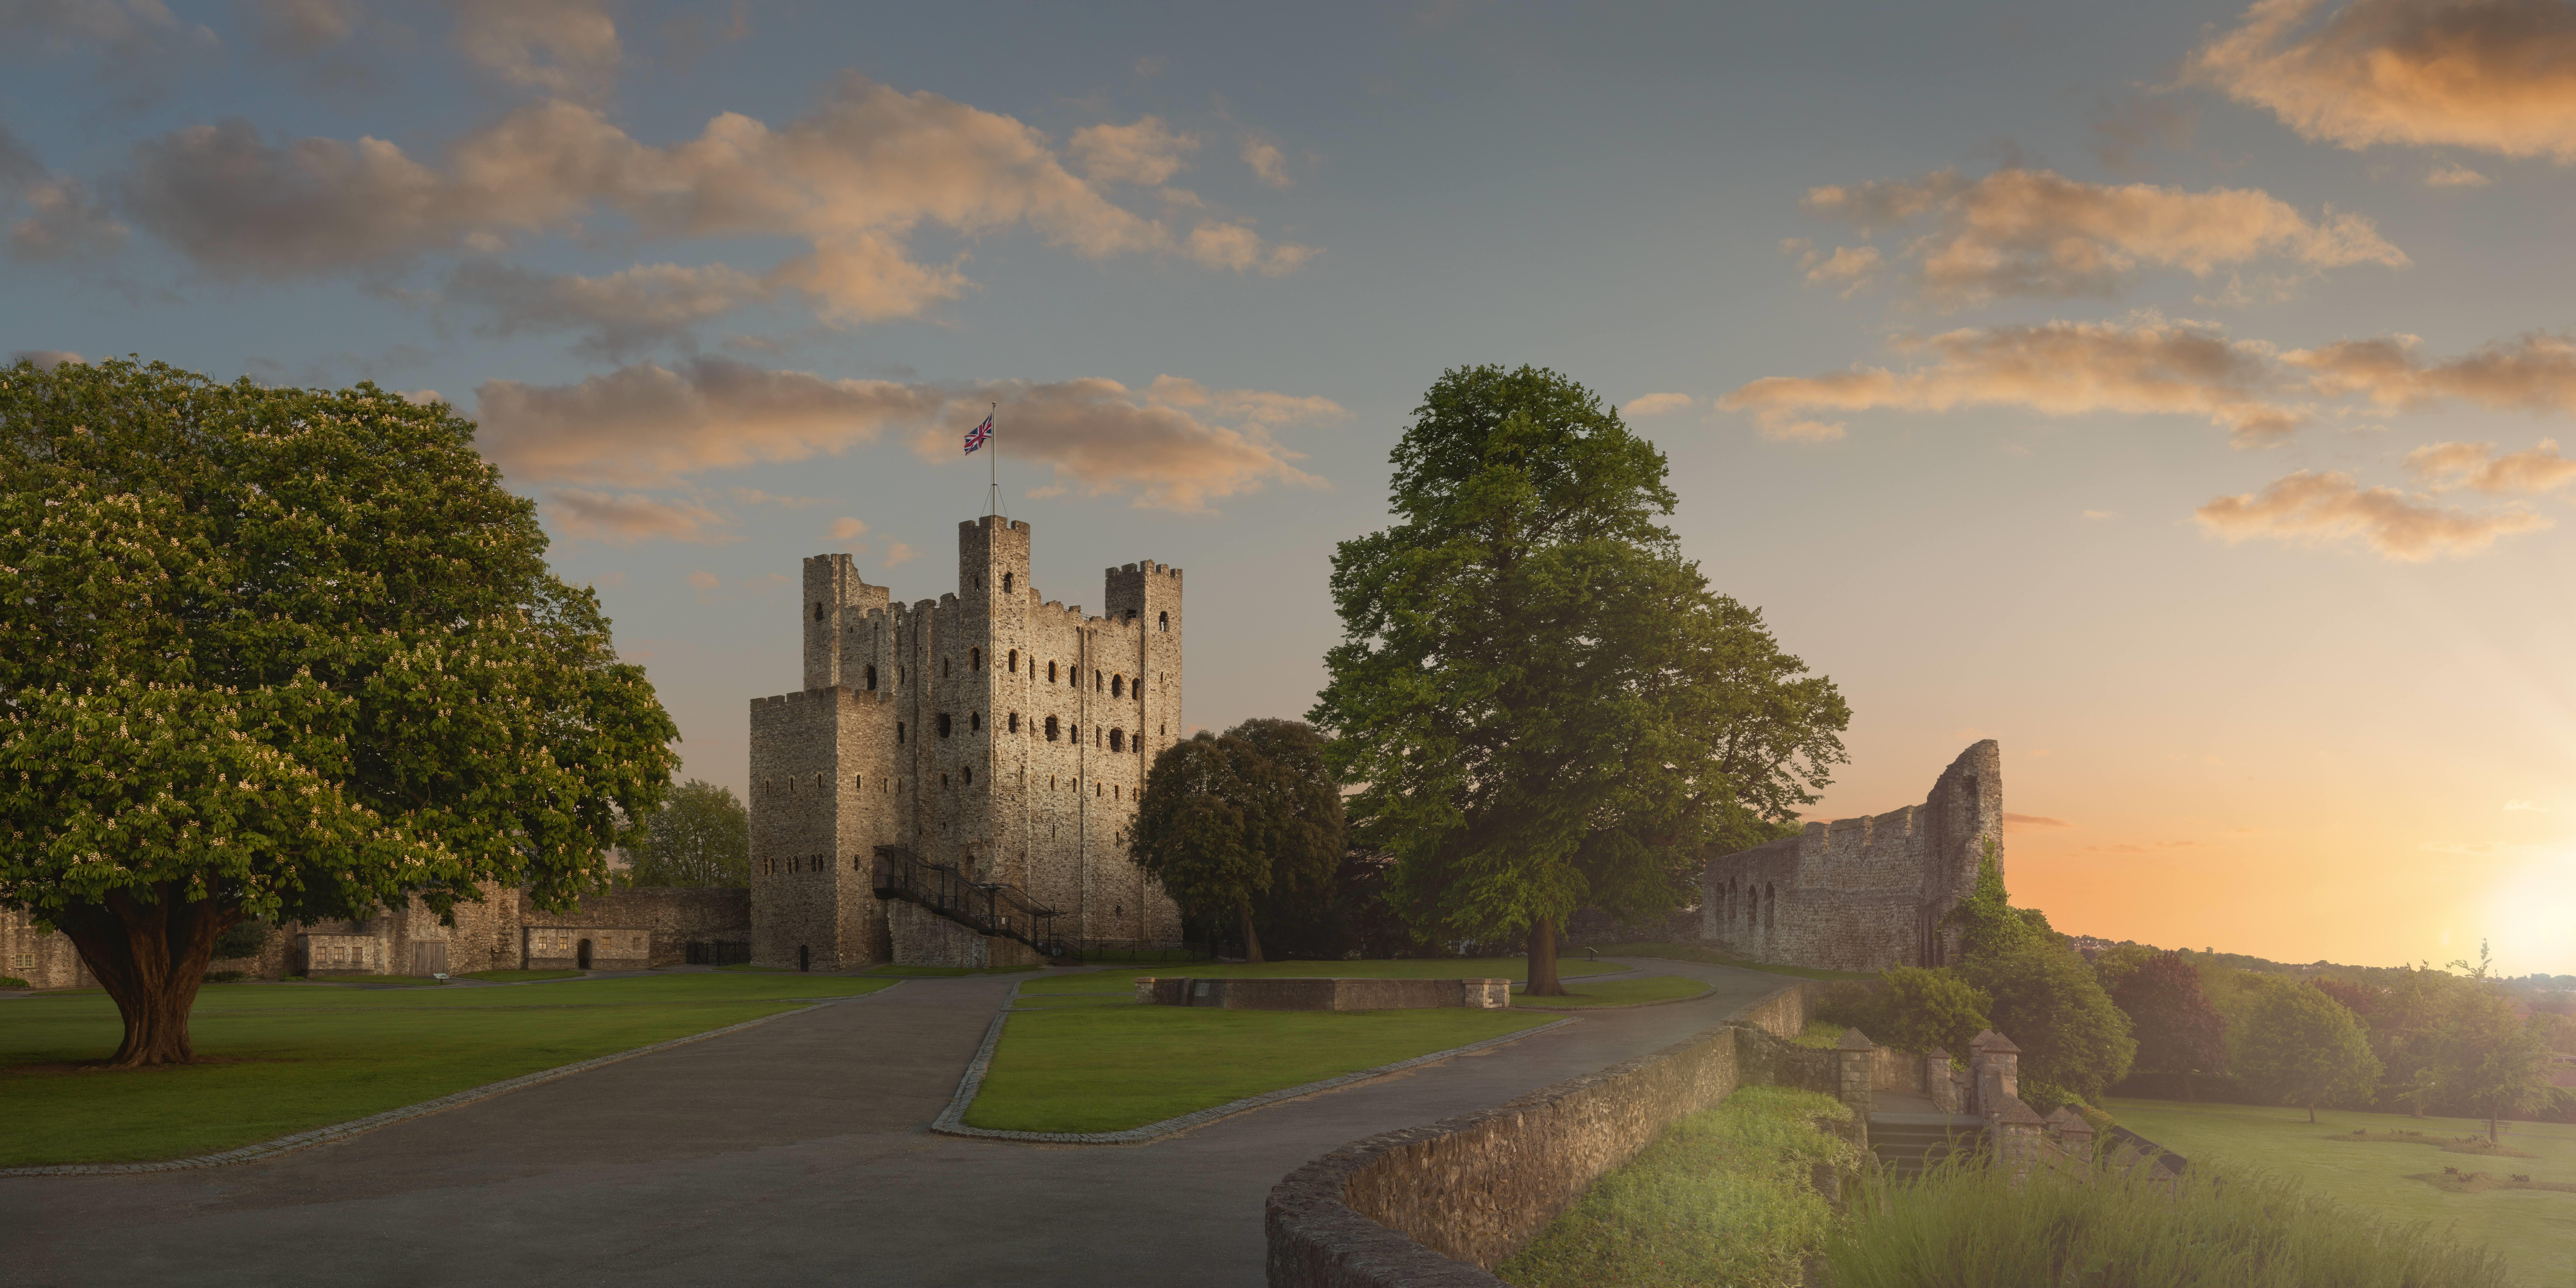 read our guide to the spectacular castles in kent